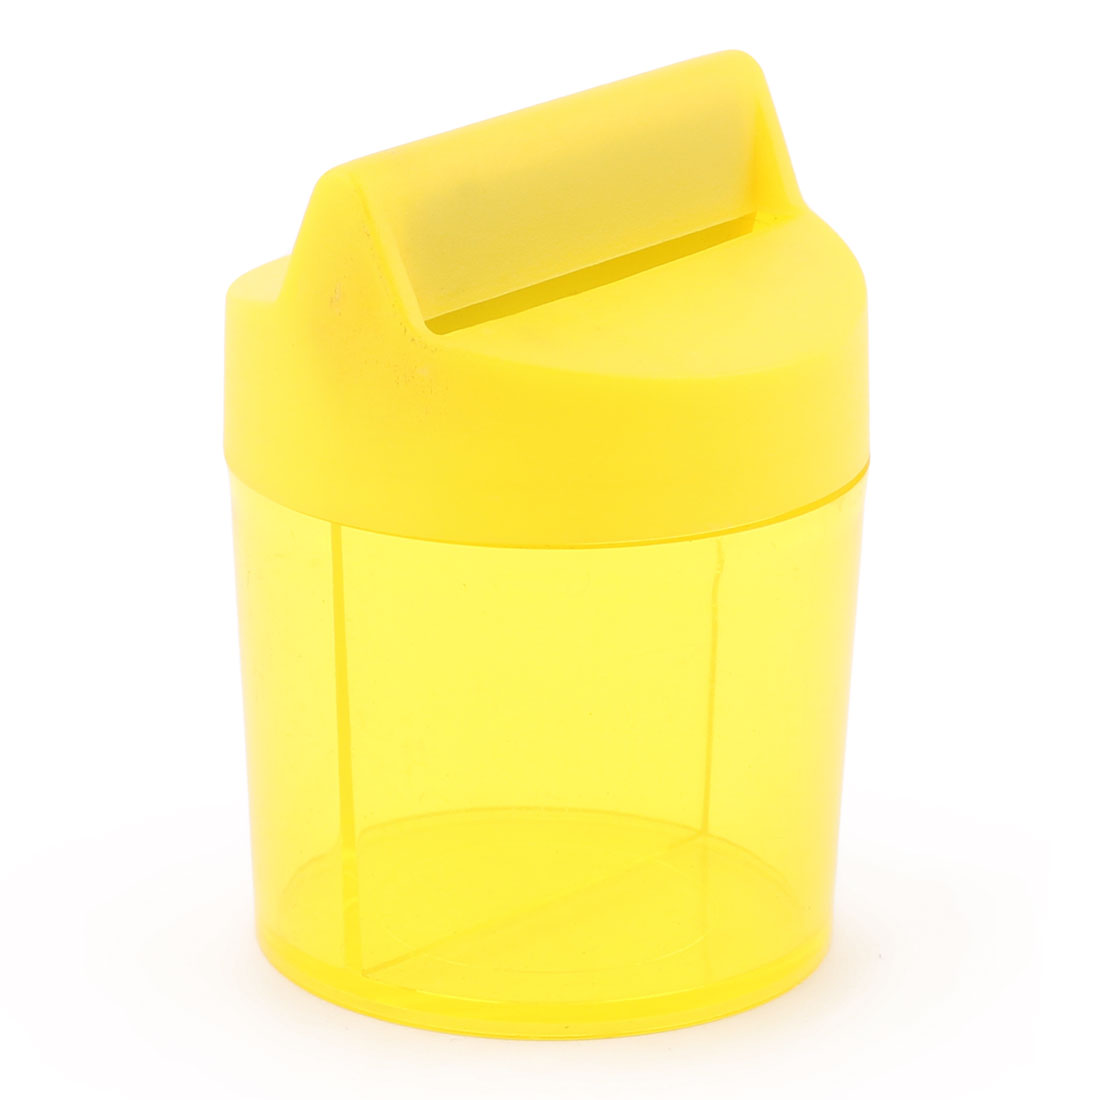 Office Home Plastic Round Shaped Paper Clip Dispenser Box Case Container Yellow